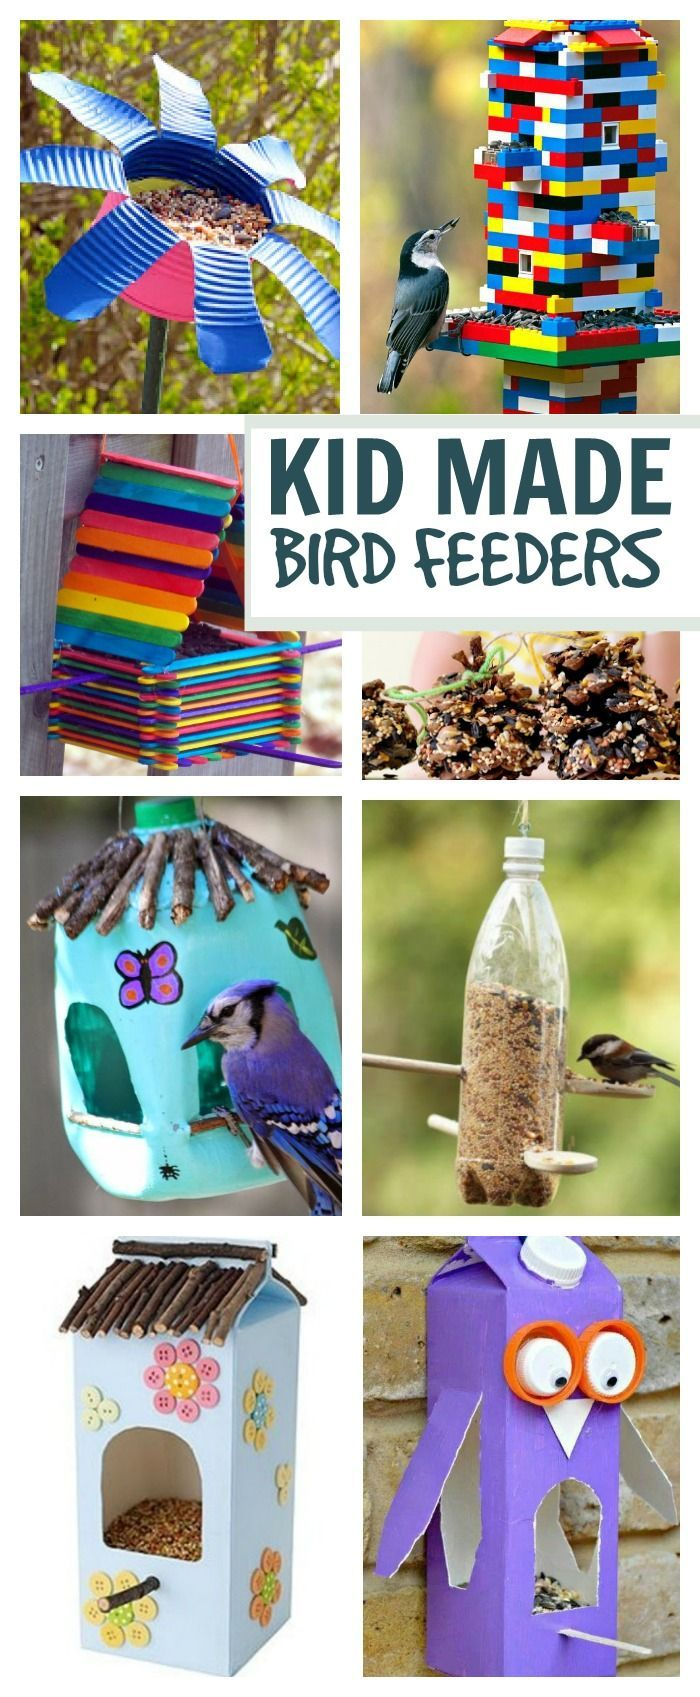 Kid Made Bird Feeders | Children's Play & Learning